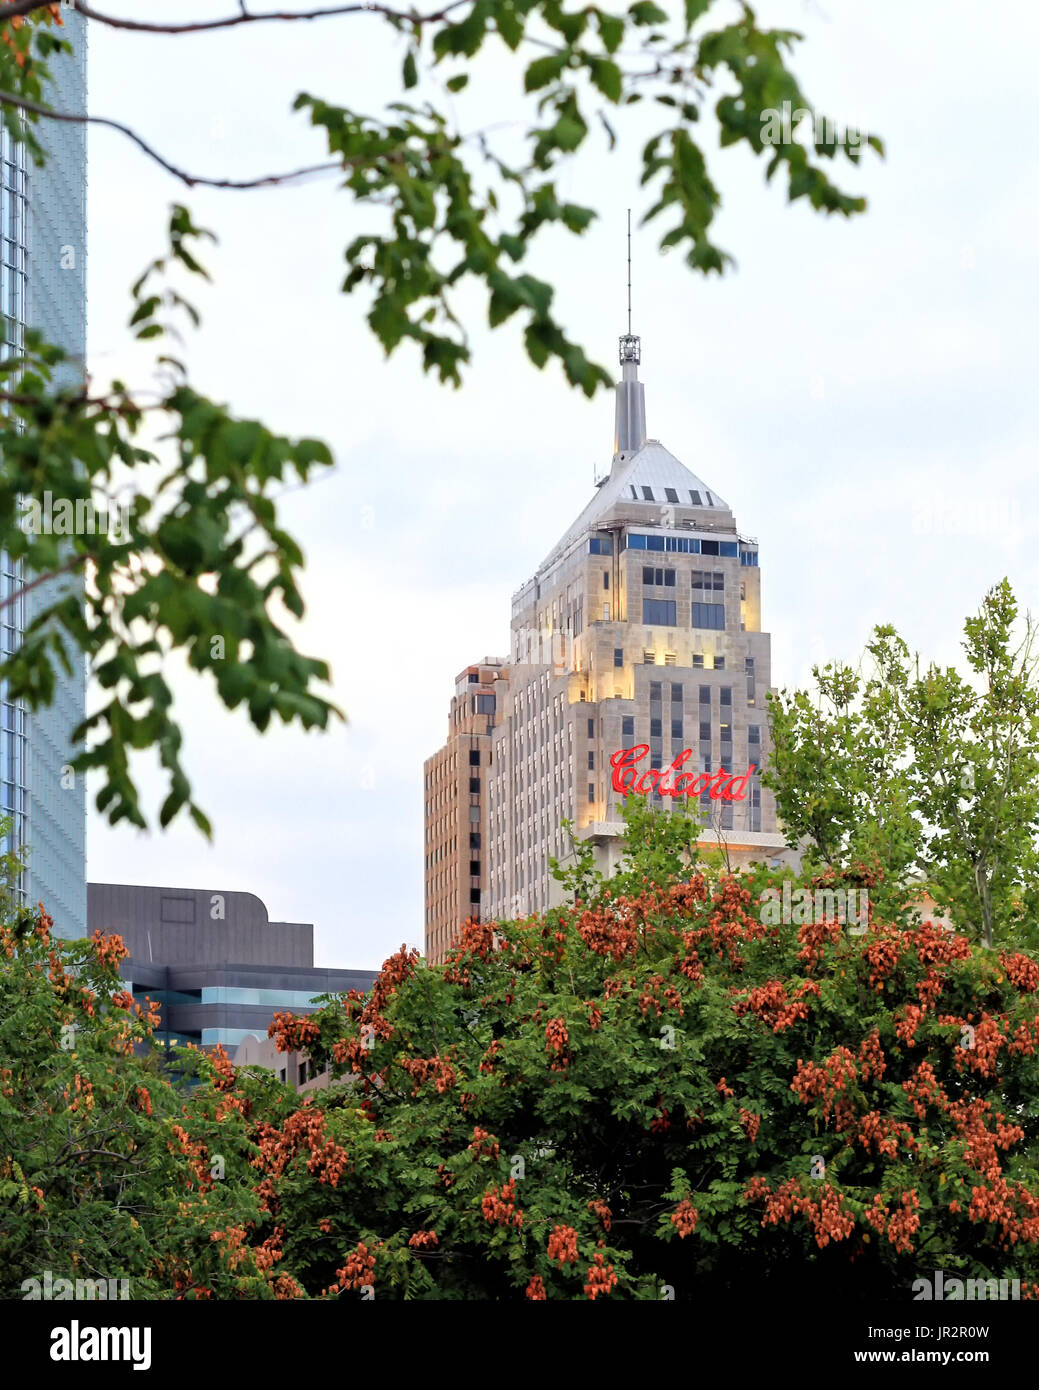 The sign for the Colcord Hotel building and the First National Center spire  in downtown Oklahoma City are viewed from a distance through trees. - Stock Image